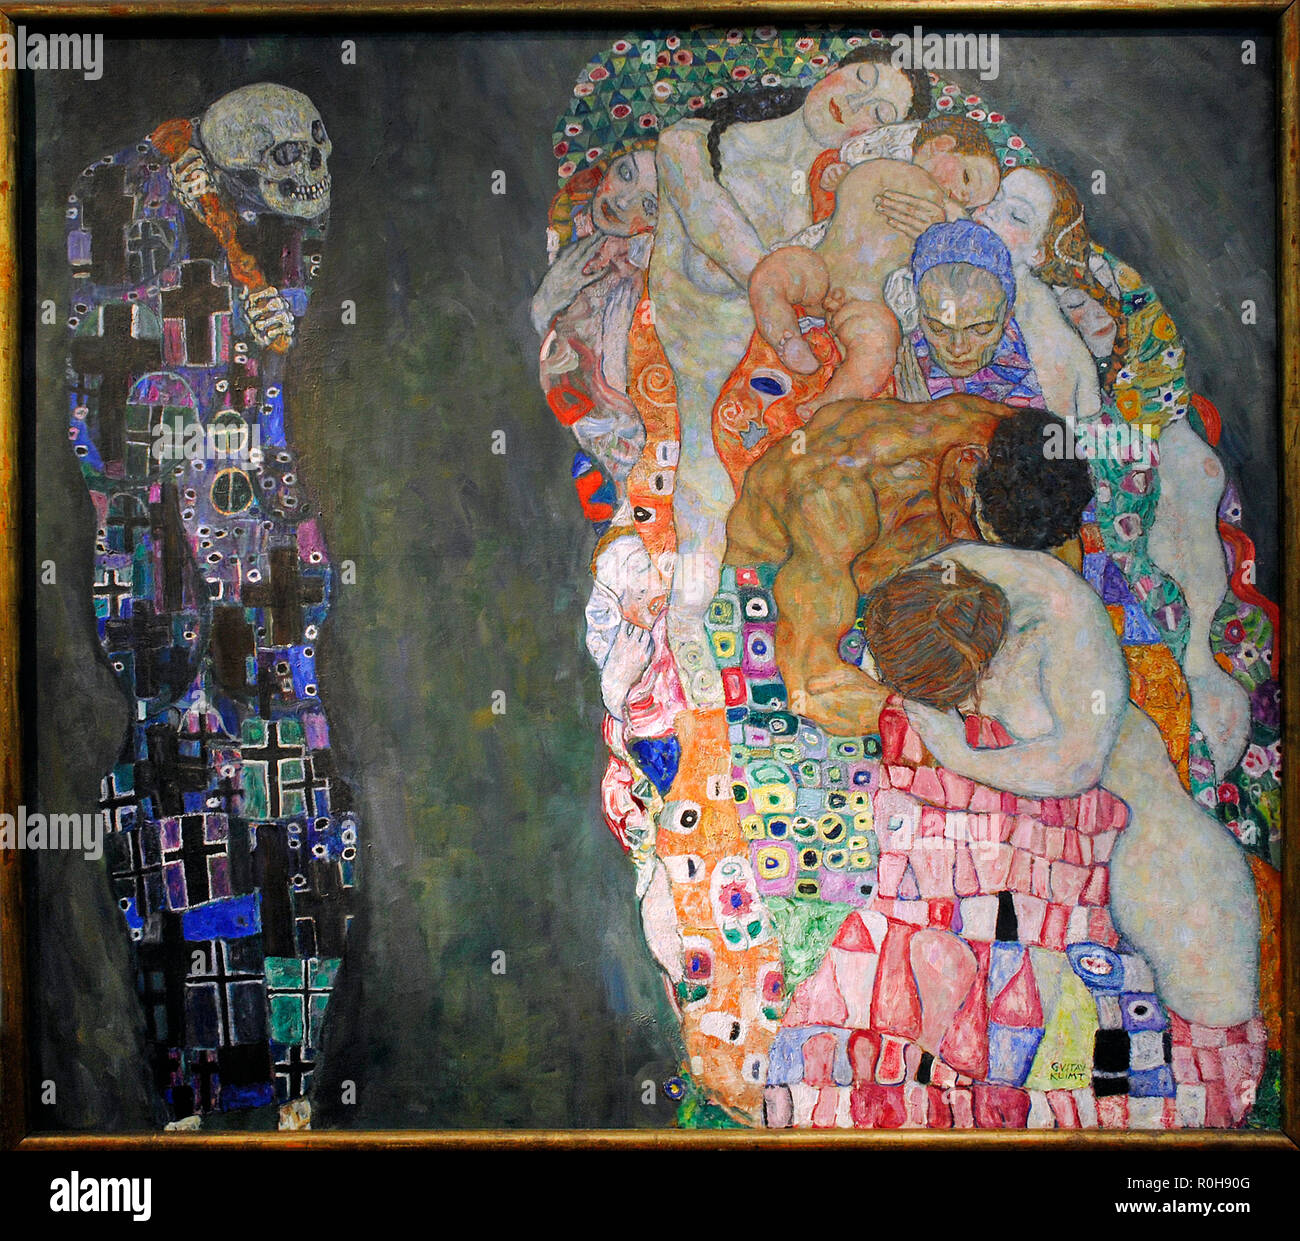 Gustav Klimt (Vienna, 1862-Vienna, 1918). Austrian symbolist painter. Member of the Vienna Secession movement. Morte e Vita 'Death and Life', 1915. Oil on canvas. 178 cm x 198 cm. Leopold Museum. Vienna. Austria. - Stock Image